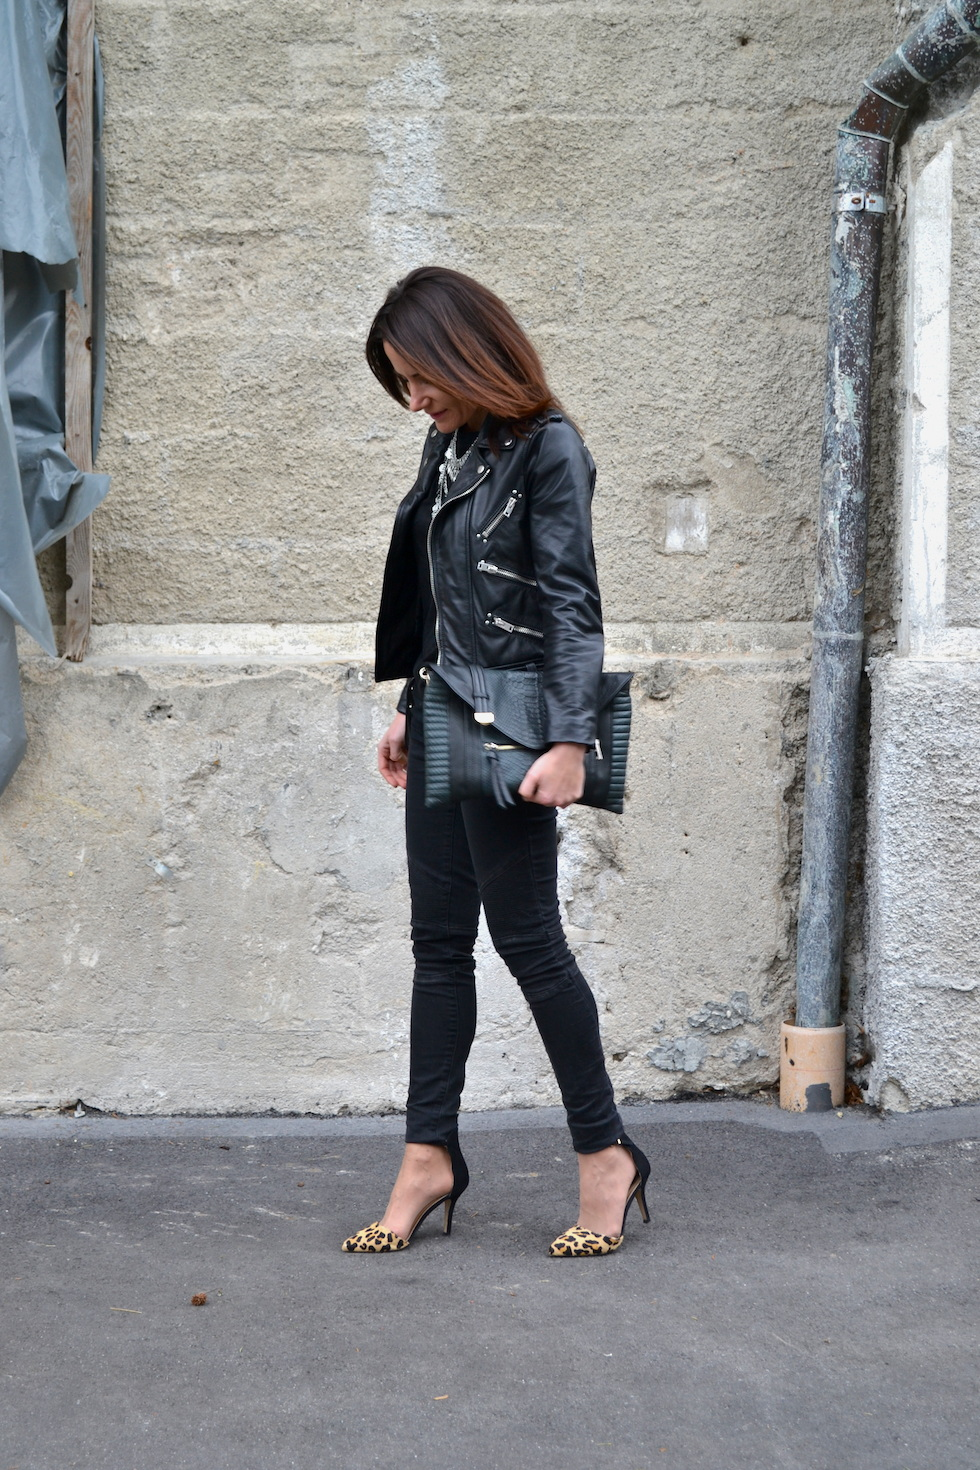 5_Fashionfriends CH, mekivi fashionblog schweiz, buffalo leo pumps, monserrat de lucca clutch